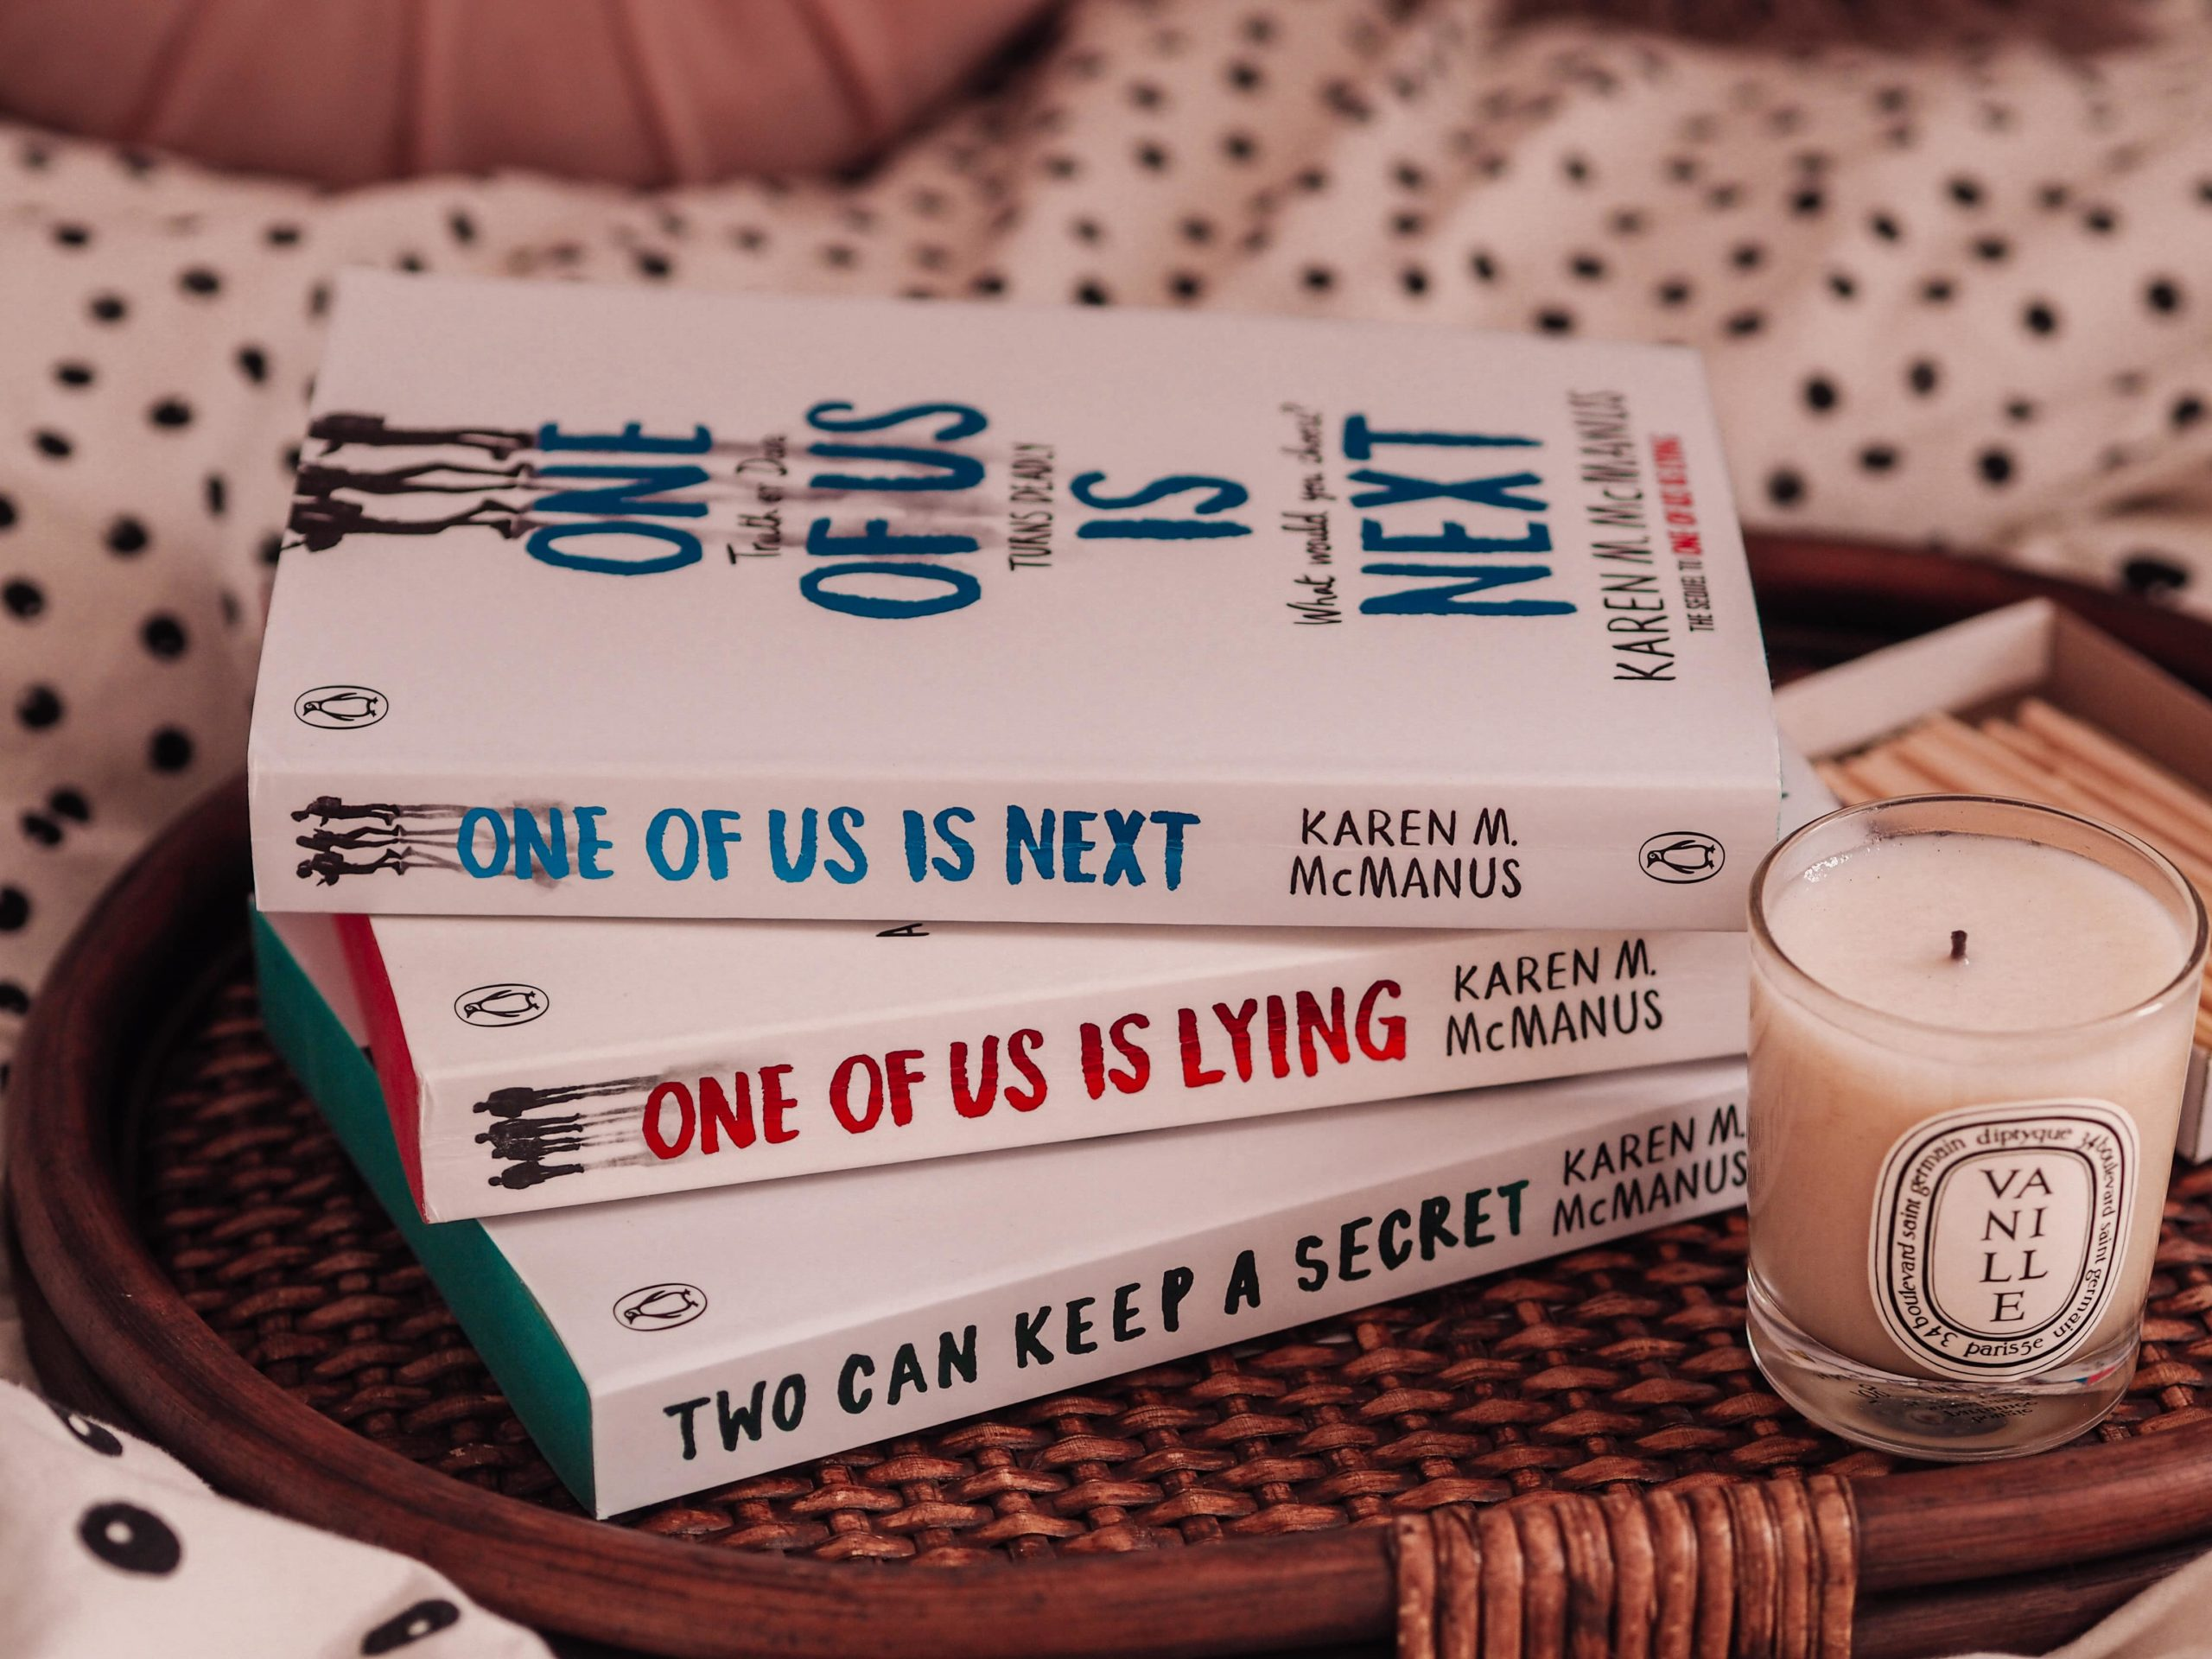 One of Us is Lying and One of Us is Next Book Review